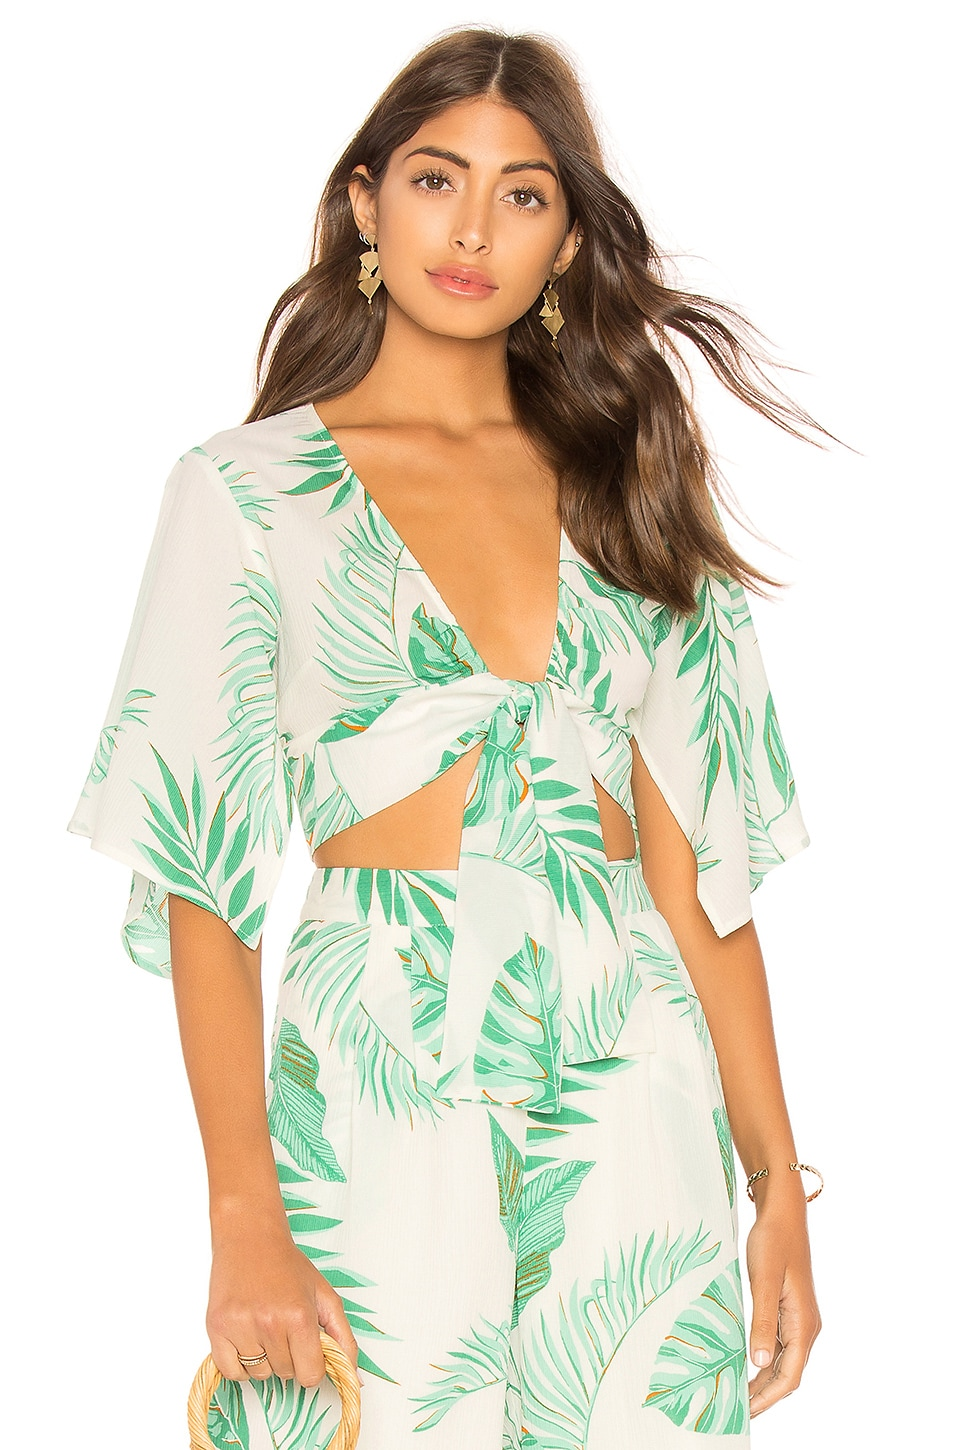 J.O.A. TIE FRONT CROP TOP WITH FLUTTER